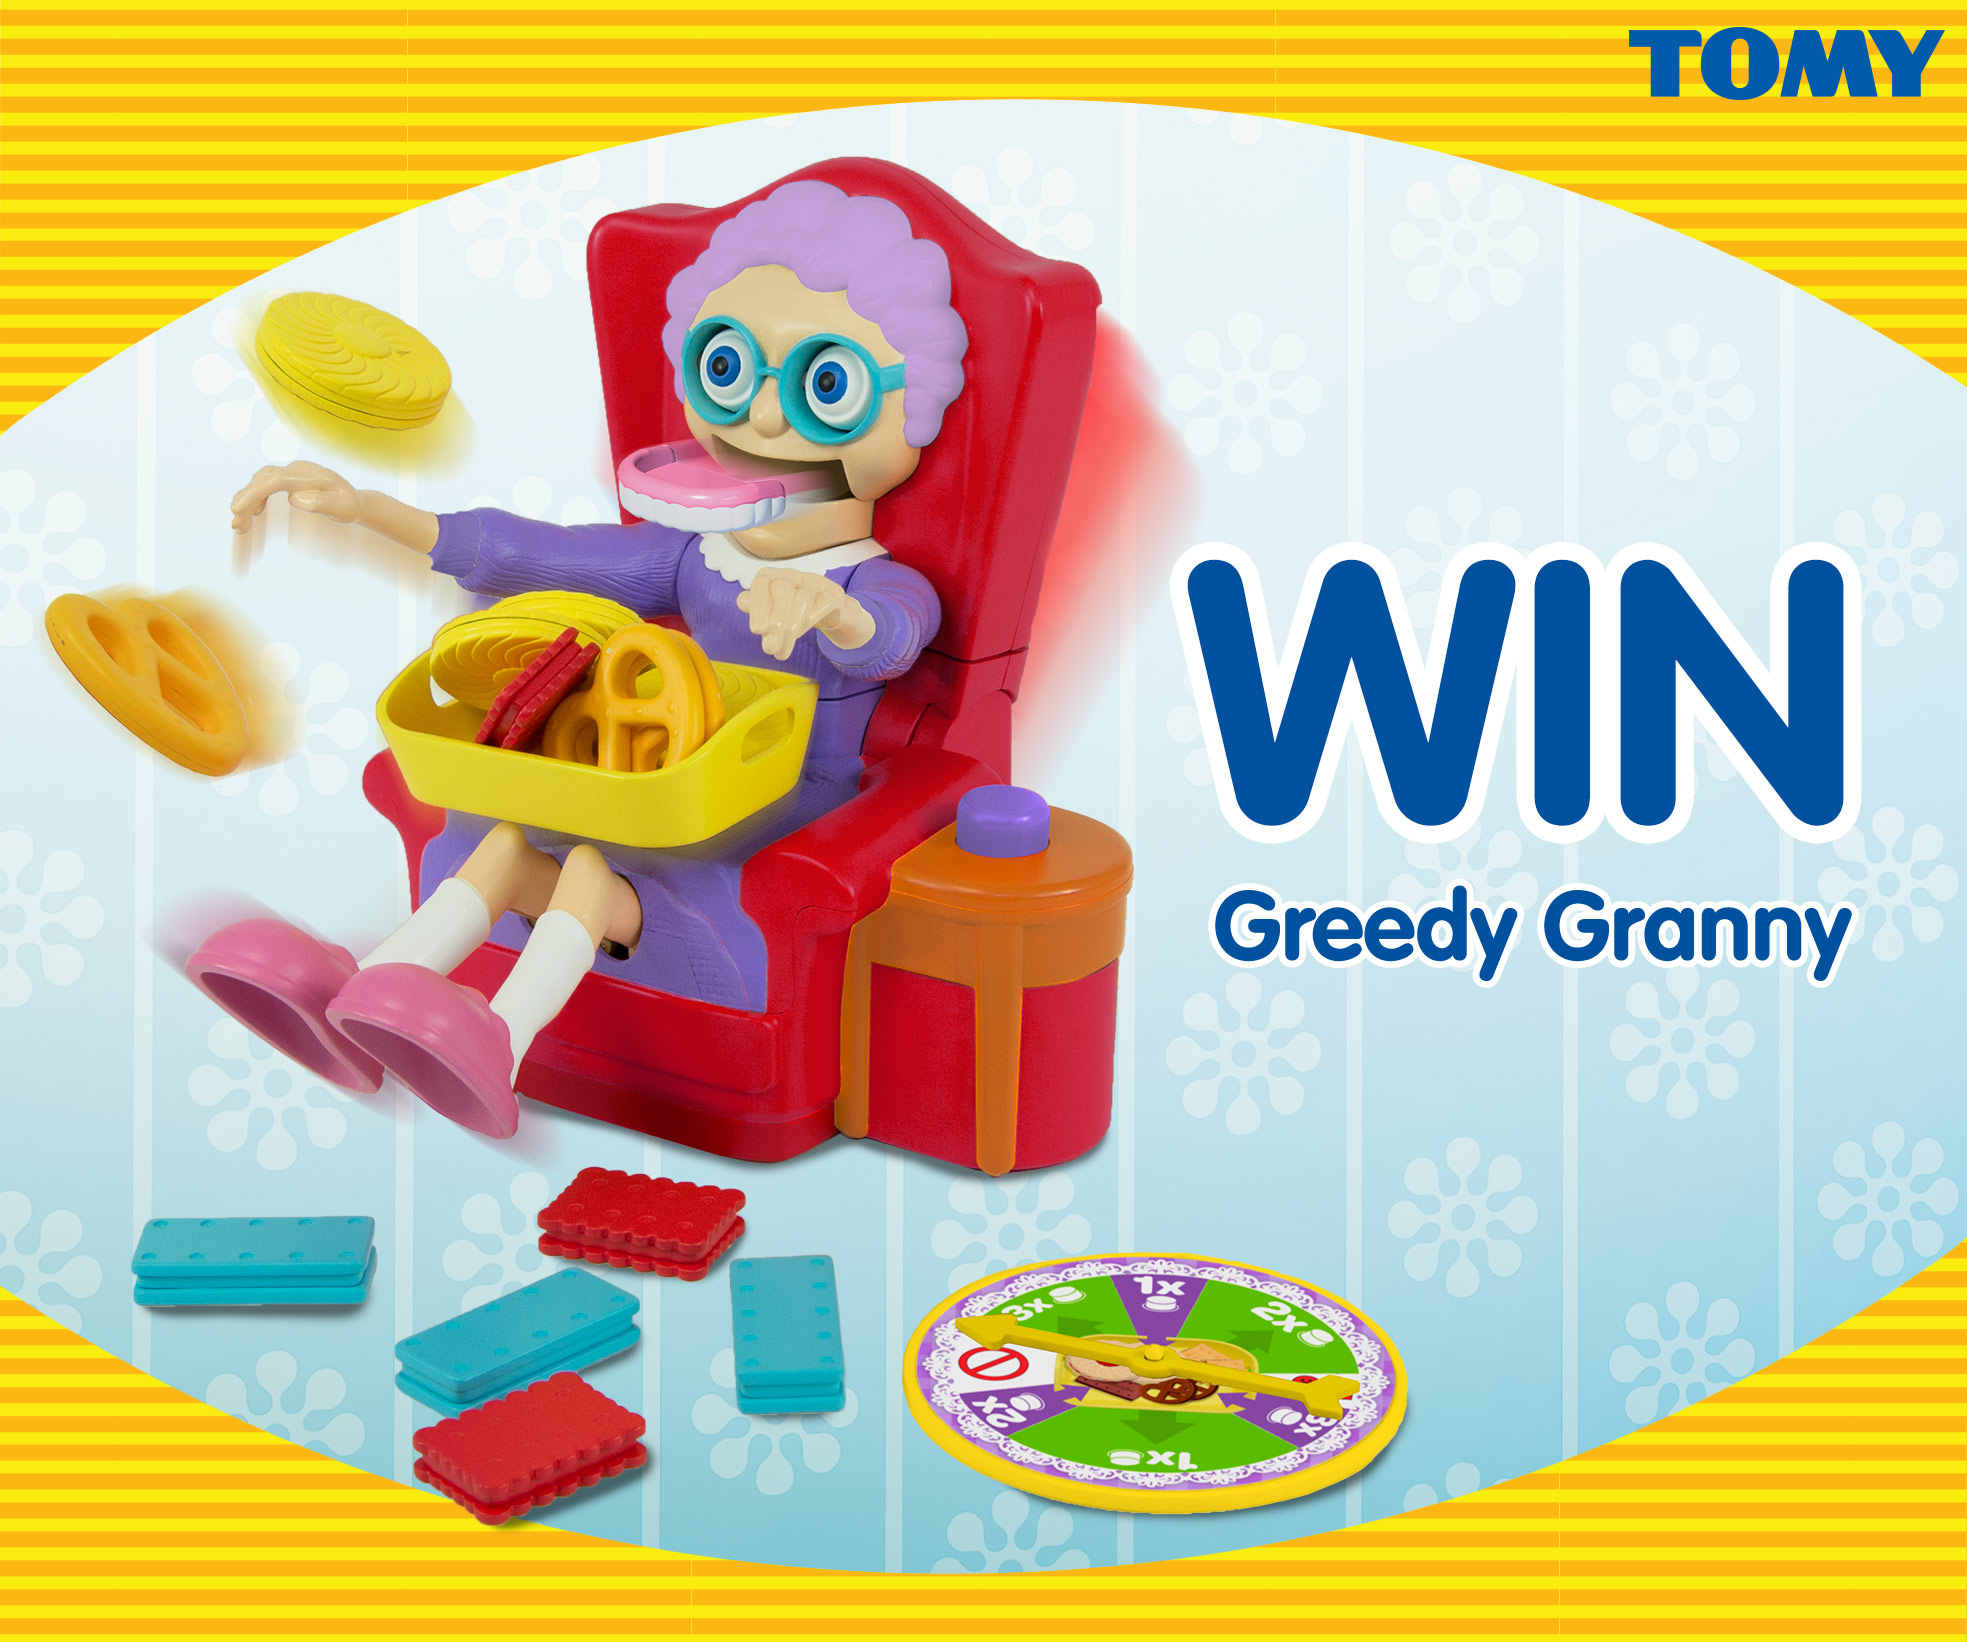 Competition: Win 1 of 3 Greedy Granny games